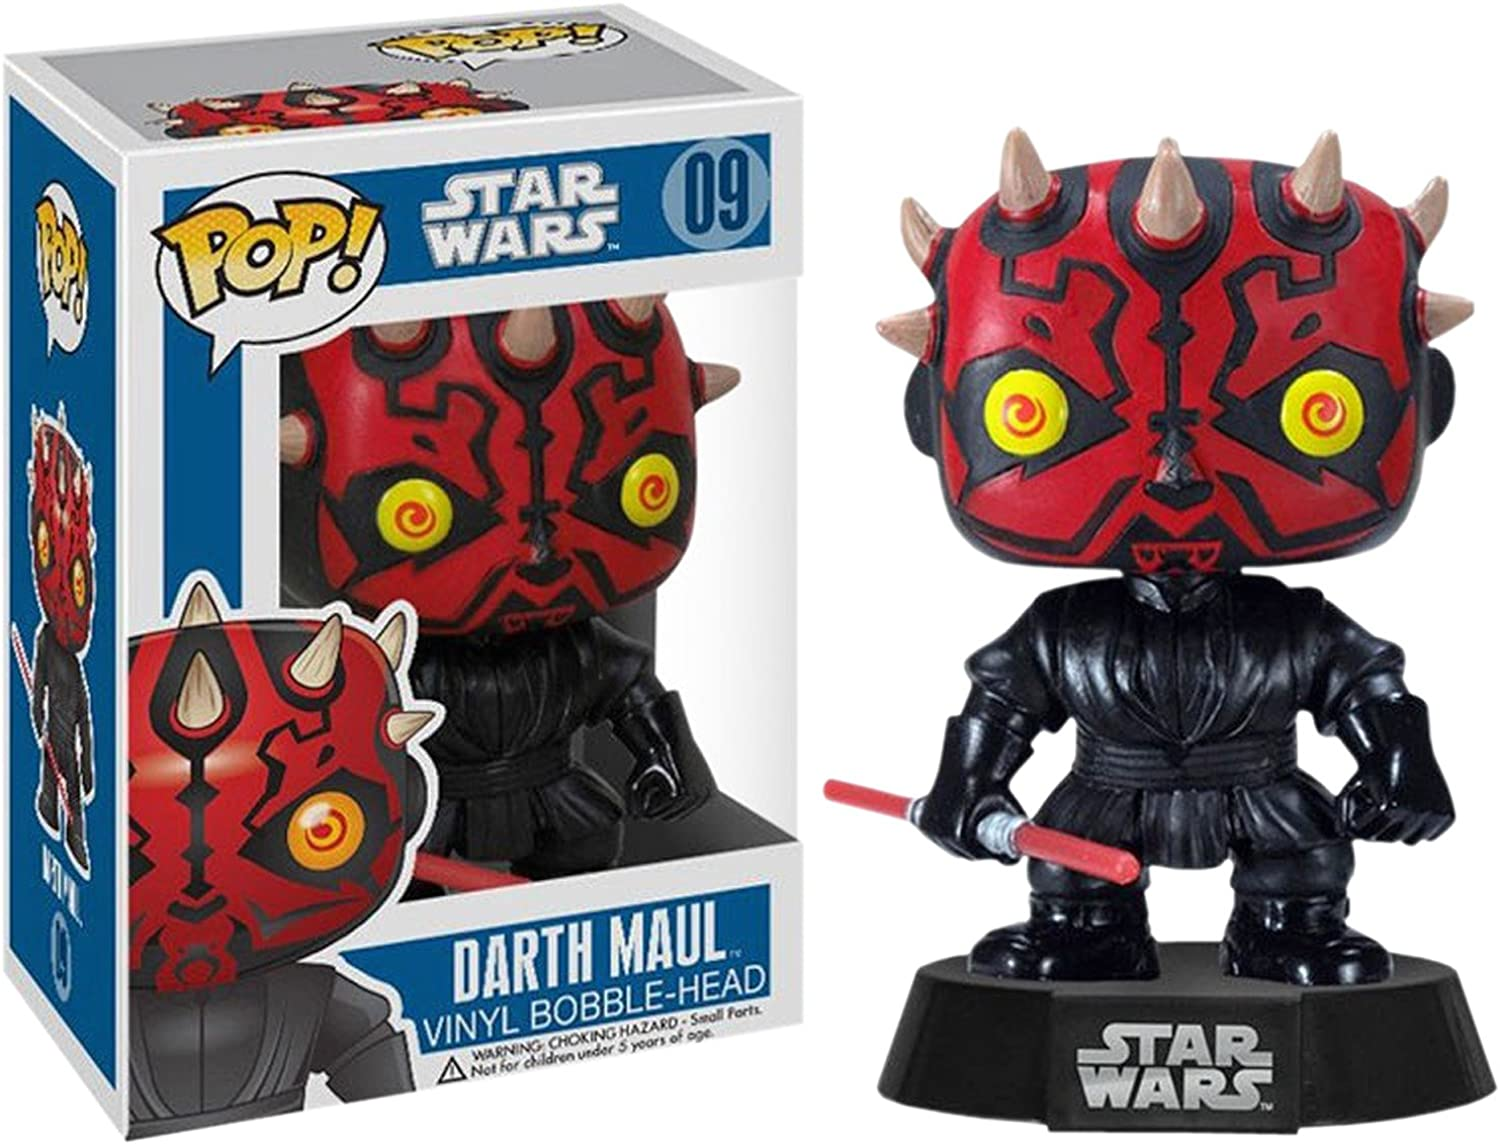 Funko Pop Vinyl Figure Darth Maul 2390 Luke Darth Vader by Yele 128